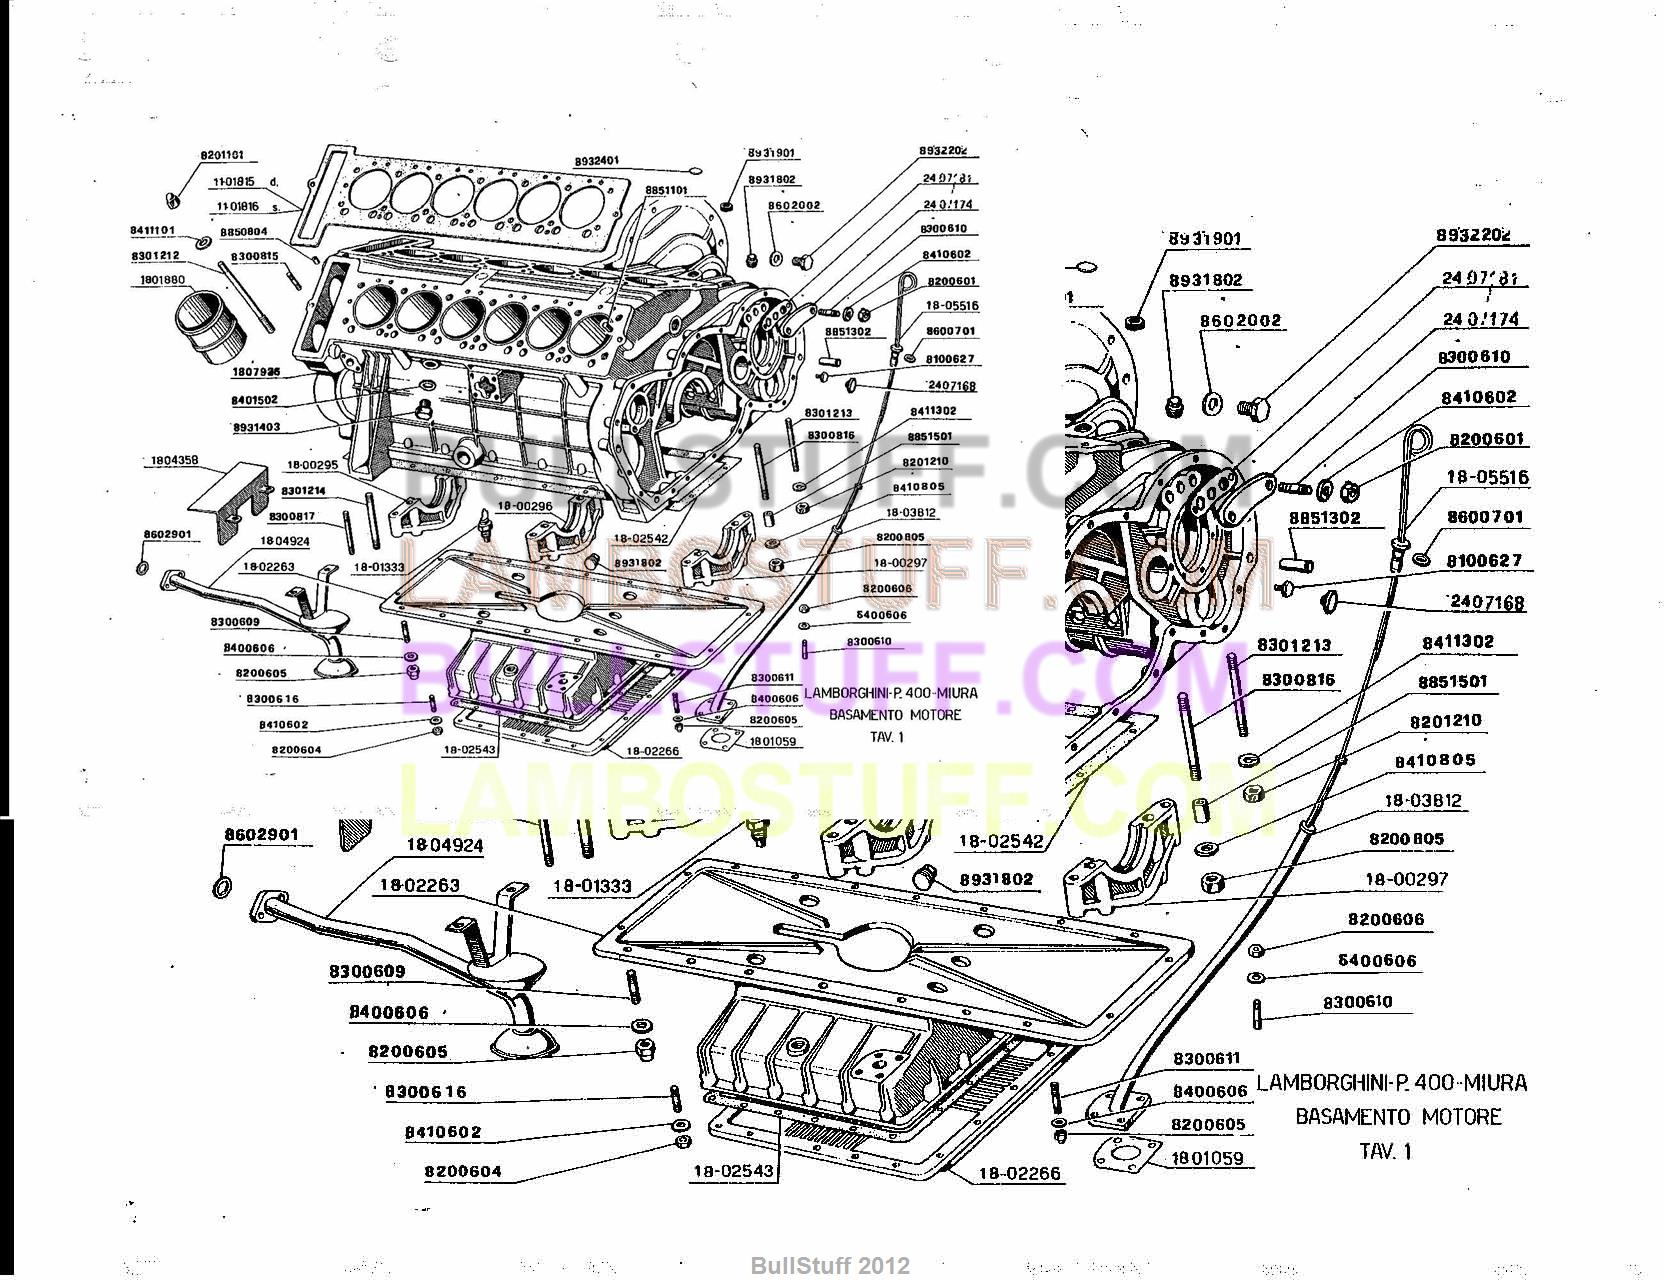 Lamborghini Gallardo Engine Wiring Diagram Lamborghini Wiring – Lamborghini Gallardo Engine Diagram